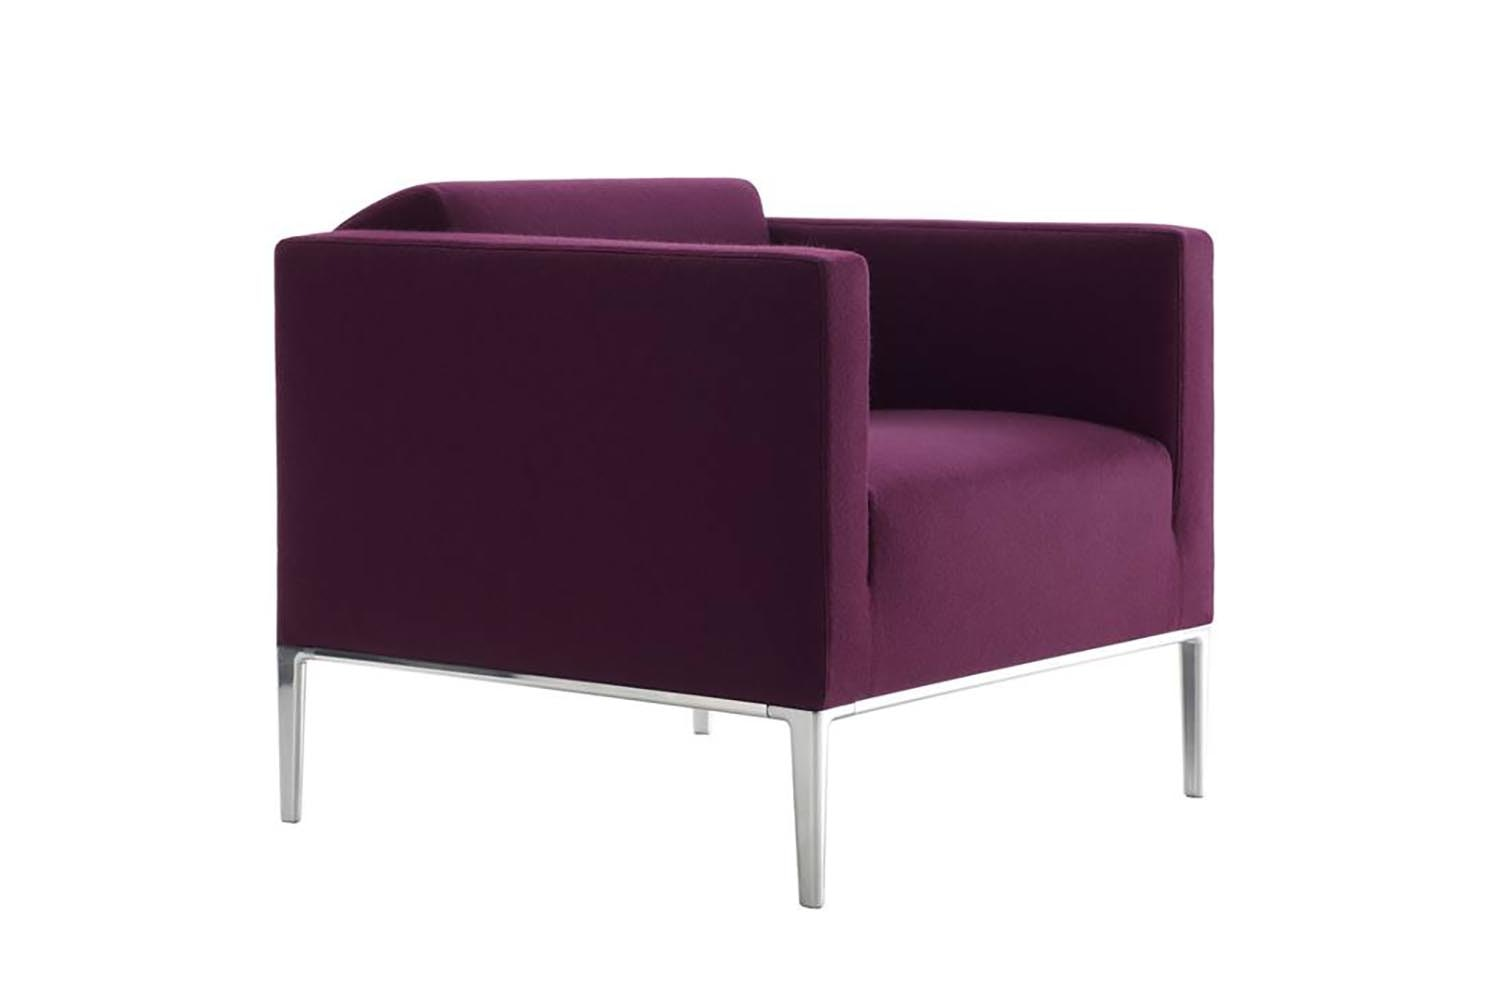 Project Jean Armchair by Antonio Citterio for B&B Italia Project